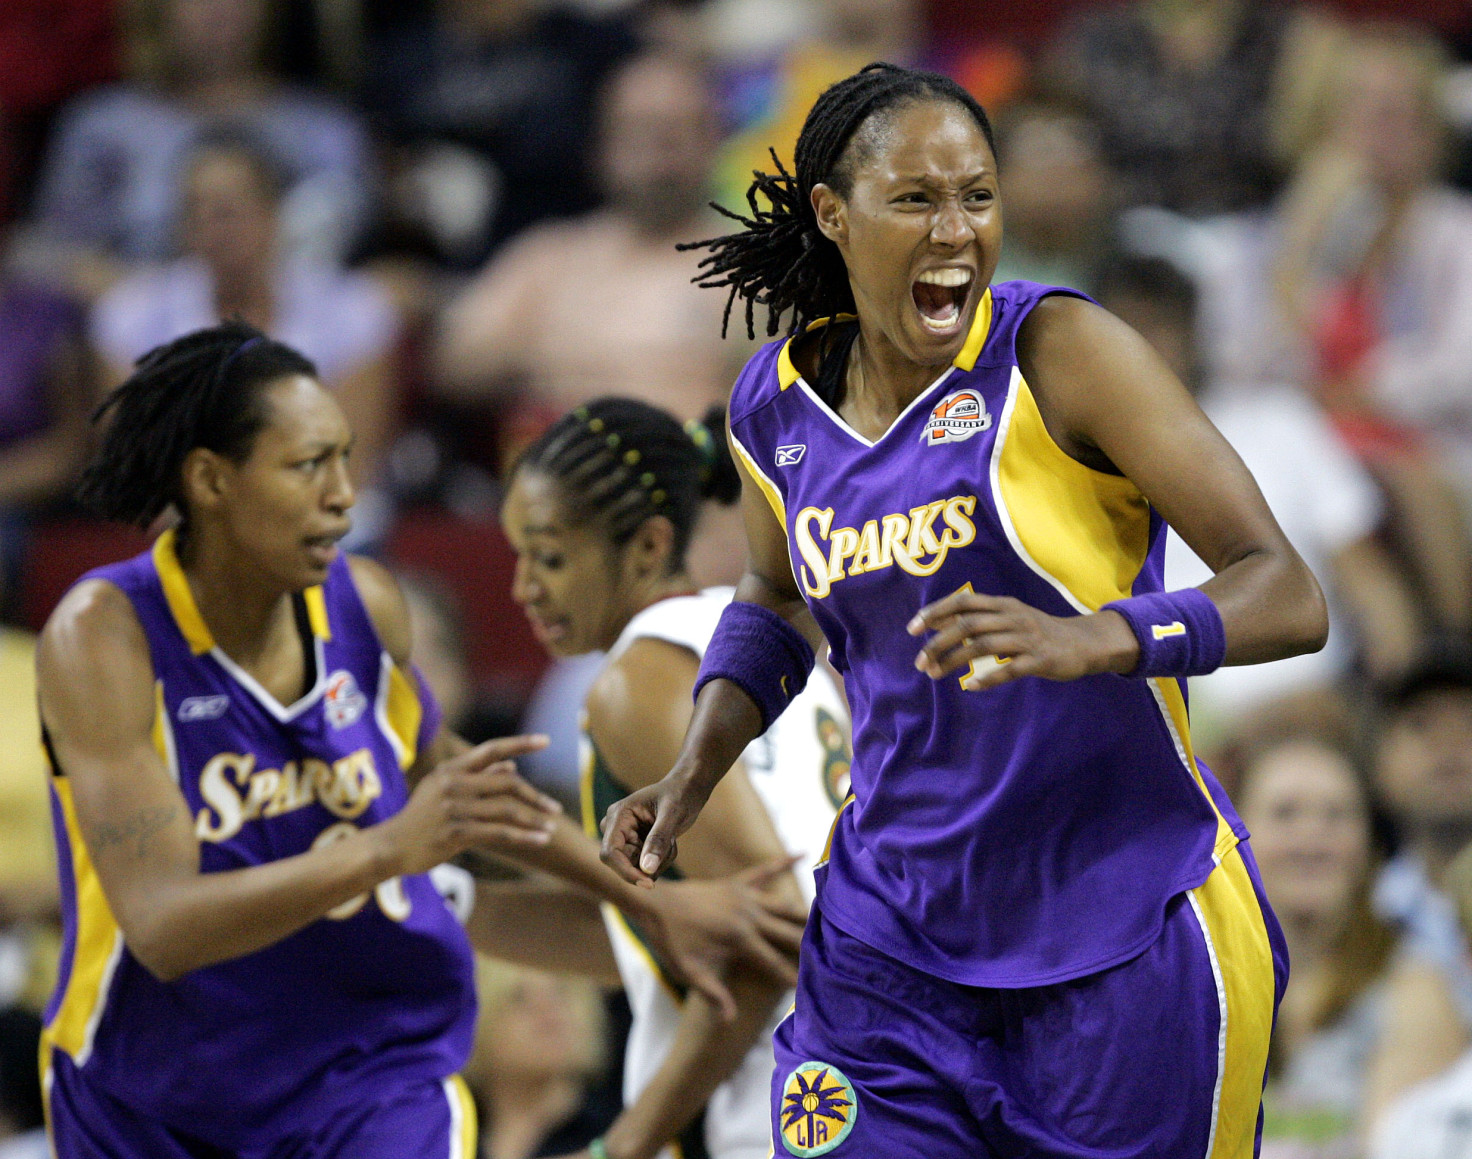 Los Angeles Sparks' Chamique Holdsclaw, right, yells out as she hobbles upcourt after being injured in the first quarter against the Seattle Storm during a WNBA first-round playoff basketball game, Friday, Aug. 18, 2006, in Seattle. She's followed by teammate Murriel Page, left, and Seattle Storm's Iziane Castro Marques. Holdsclaw returned to the game in the quarter. (AP Photo/Elaine Thompson)